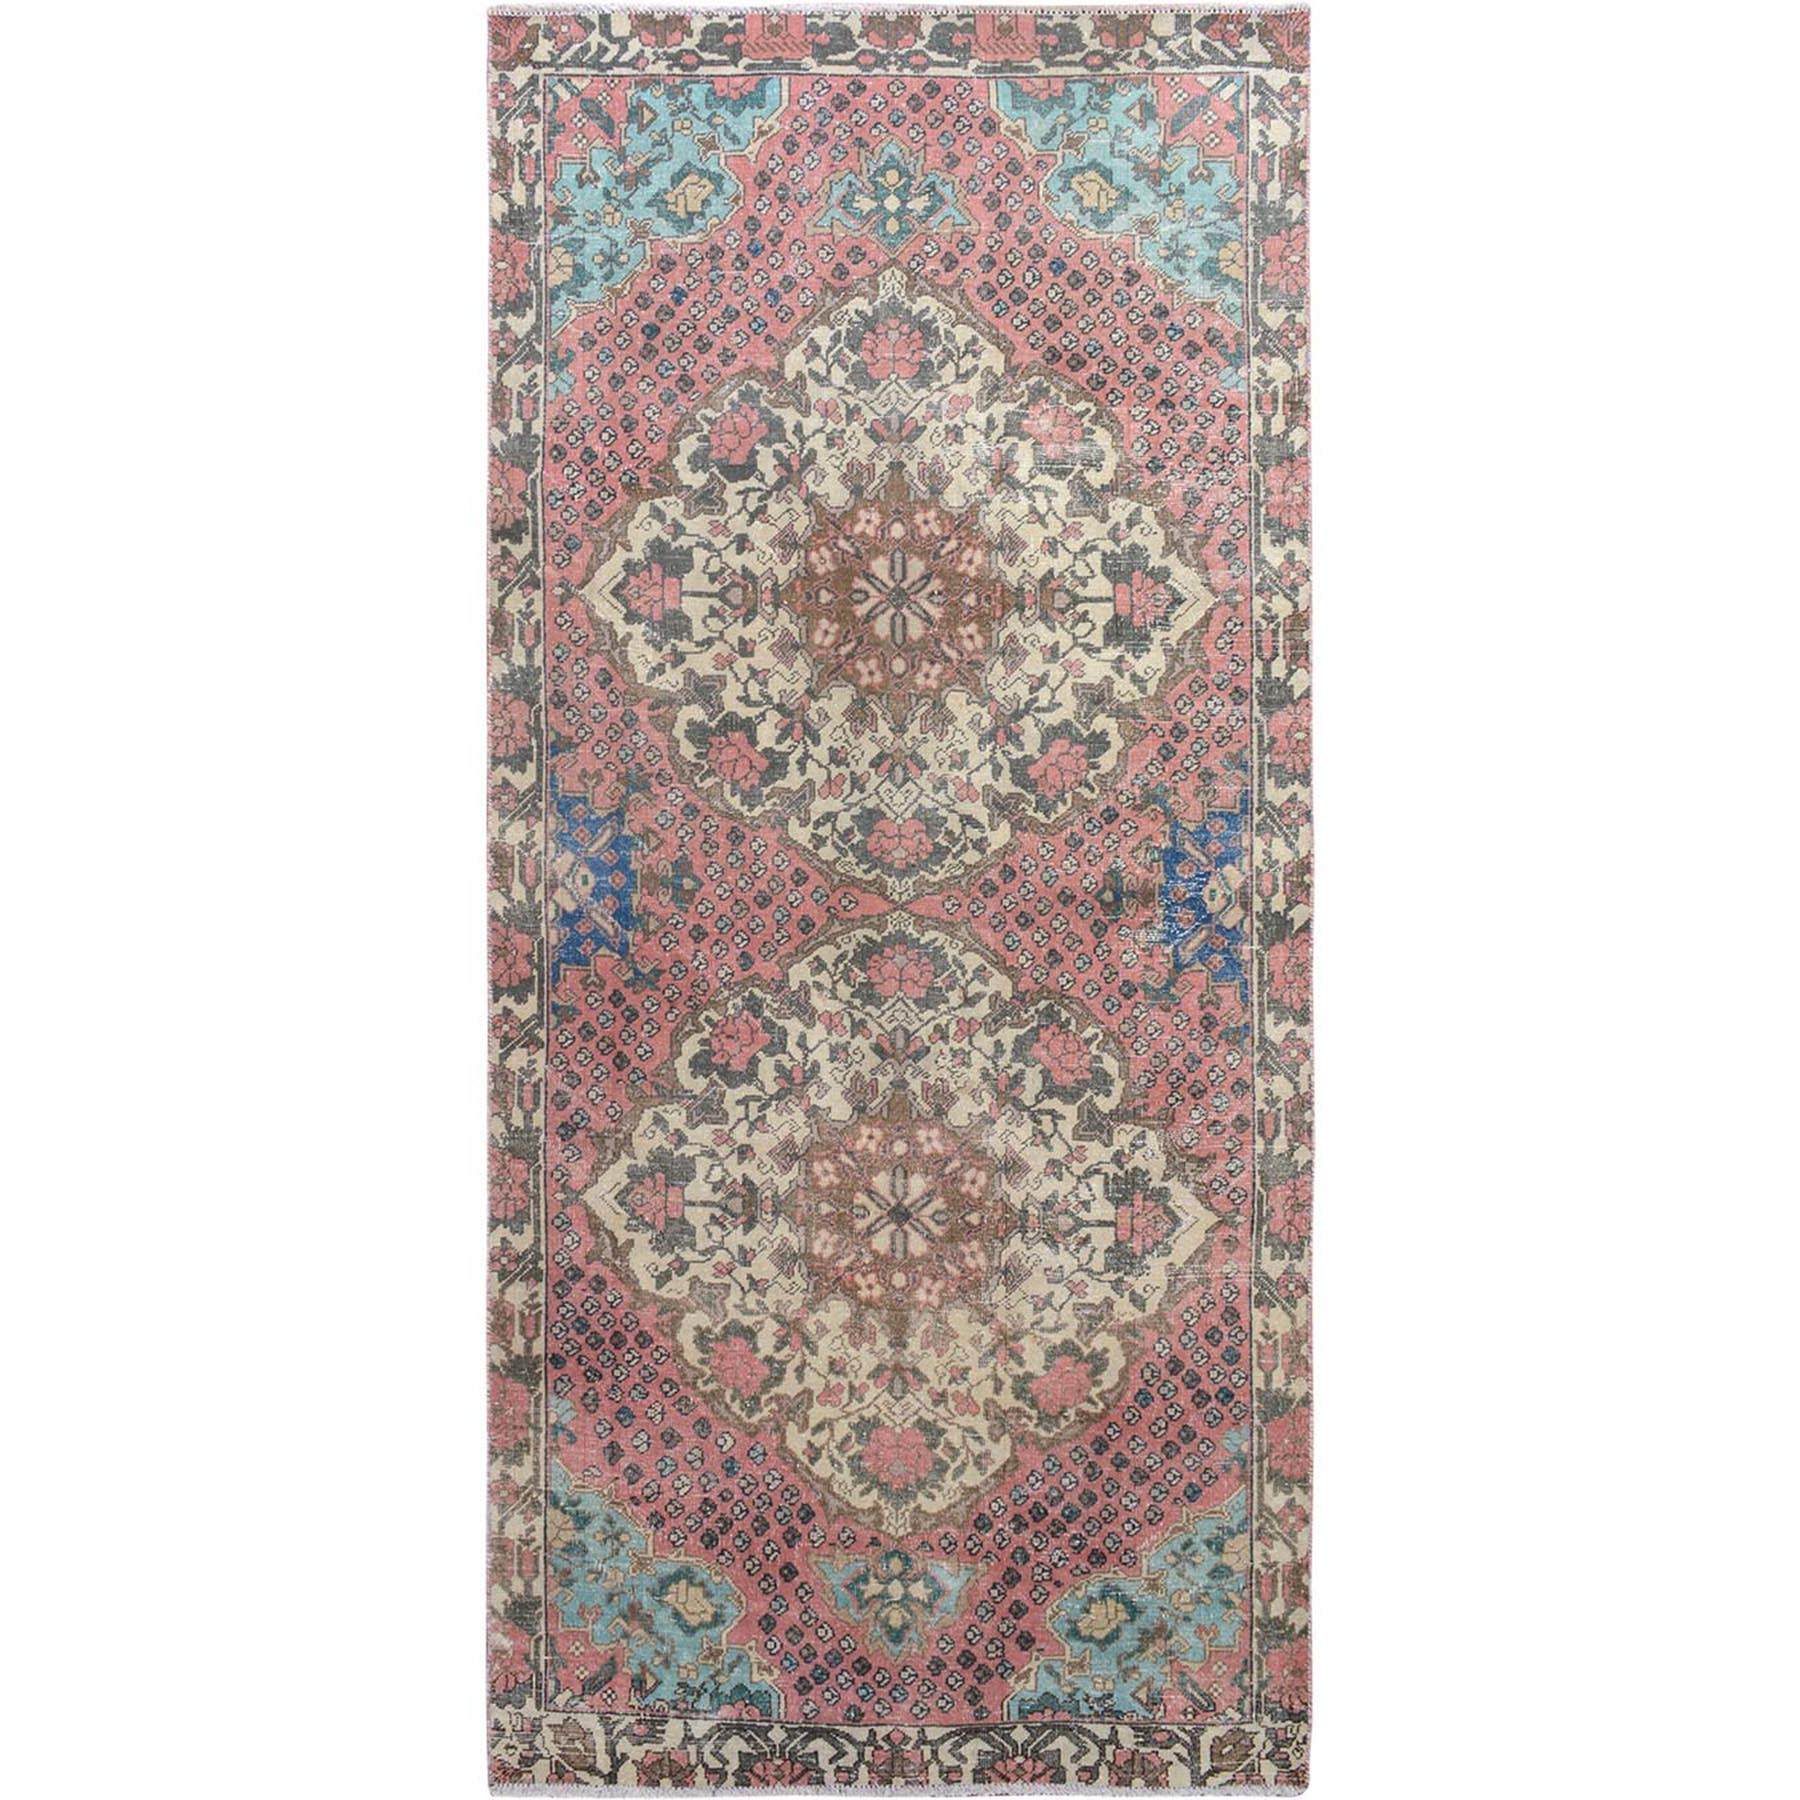 Fetneh Collection And Vintage Overdyed Collection Hand Knotted Pink Rug No: 01115318